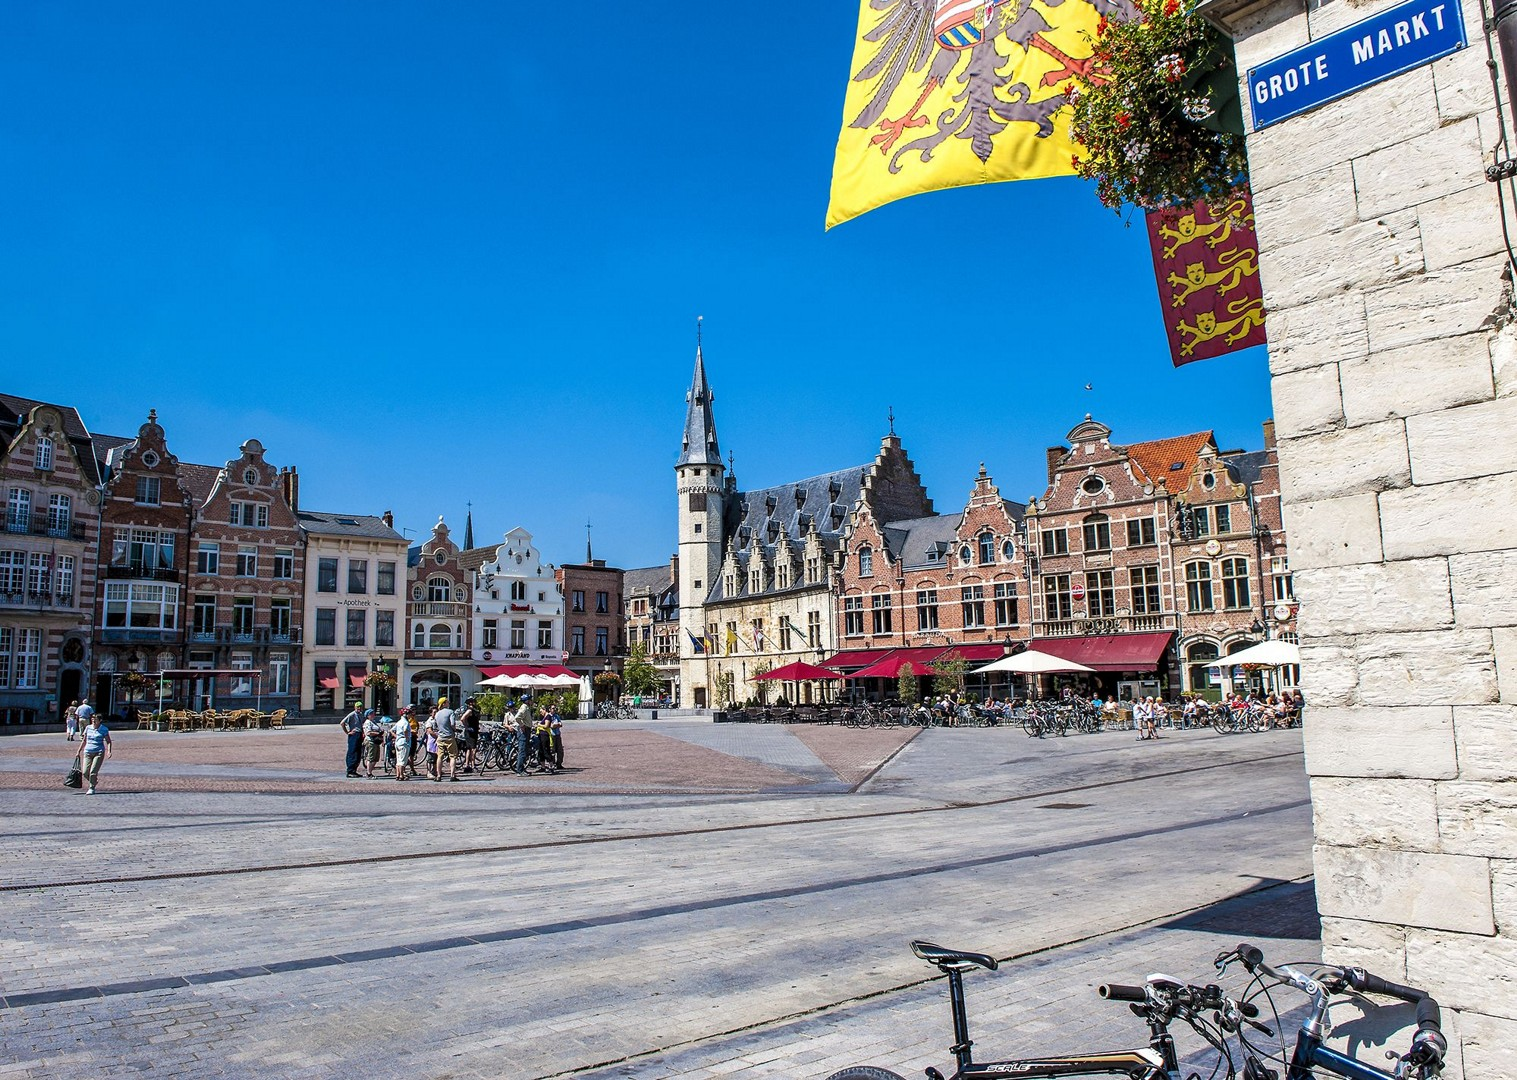 premium-cycle-tours-holland-belgium-grote-markt-culture-food.jpg - Holland and Belgium - Amsterdam to Bruges - Premium Bike and Barge Holiday - Leisure Cycling